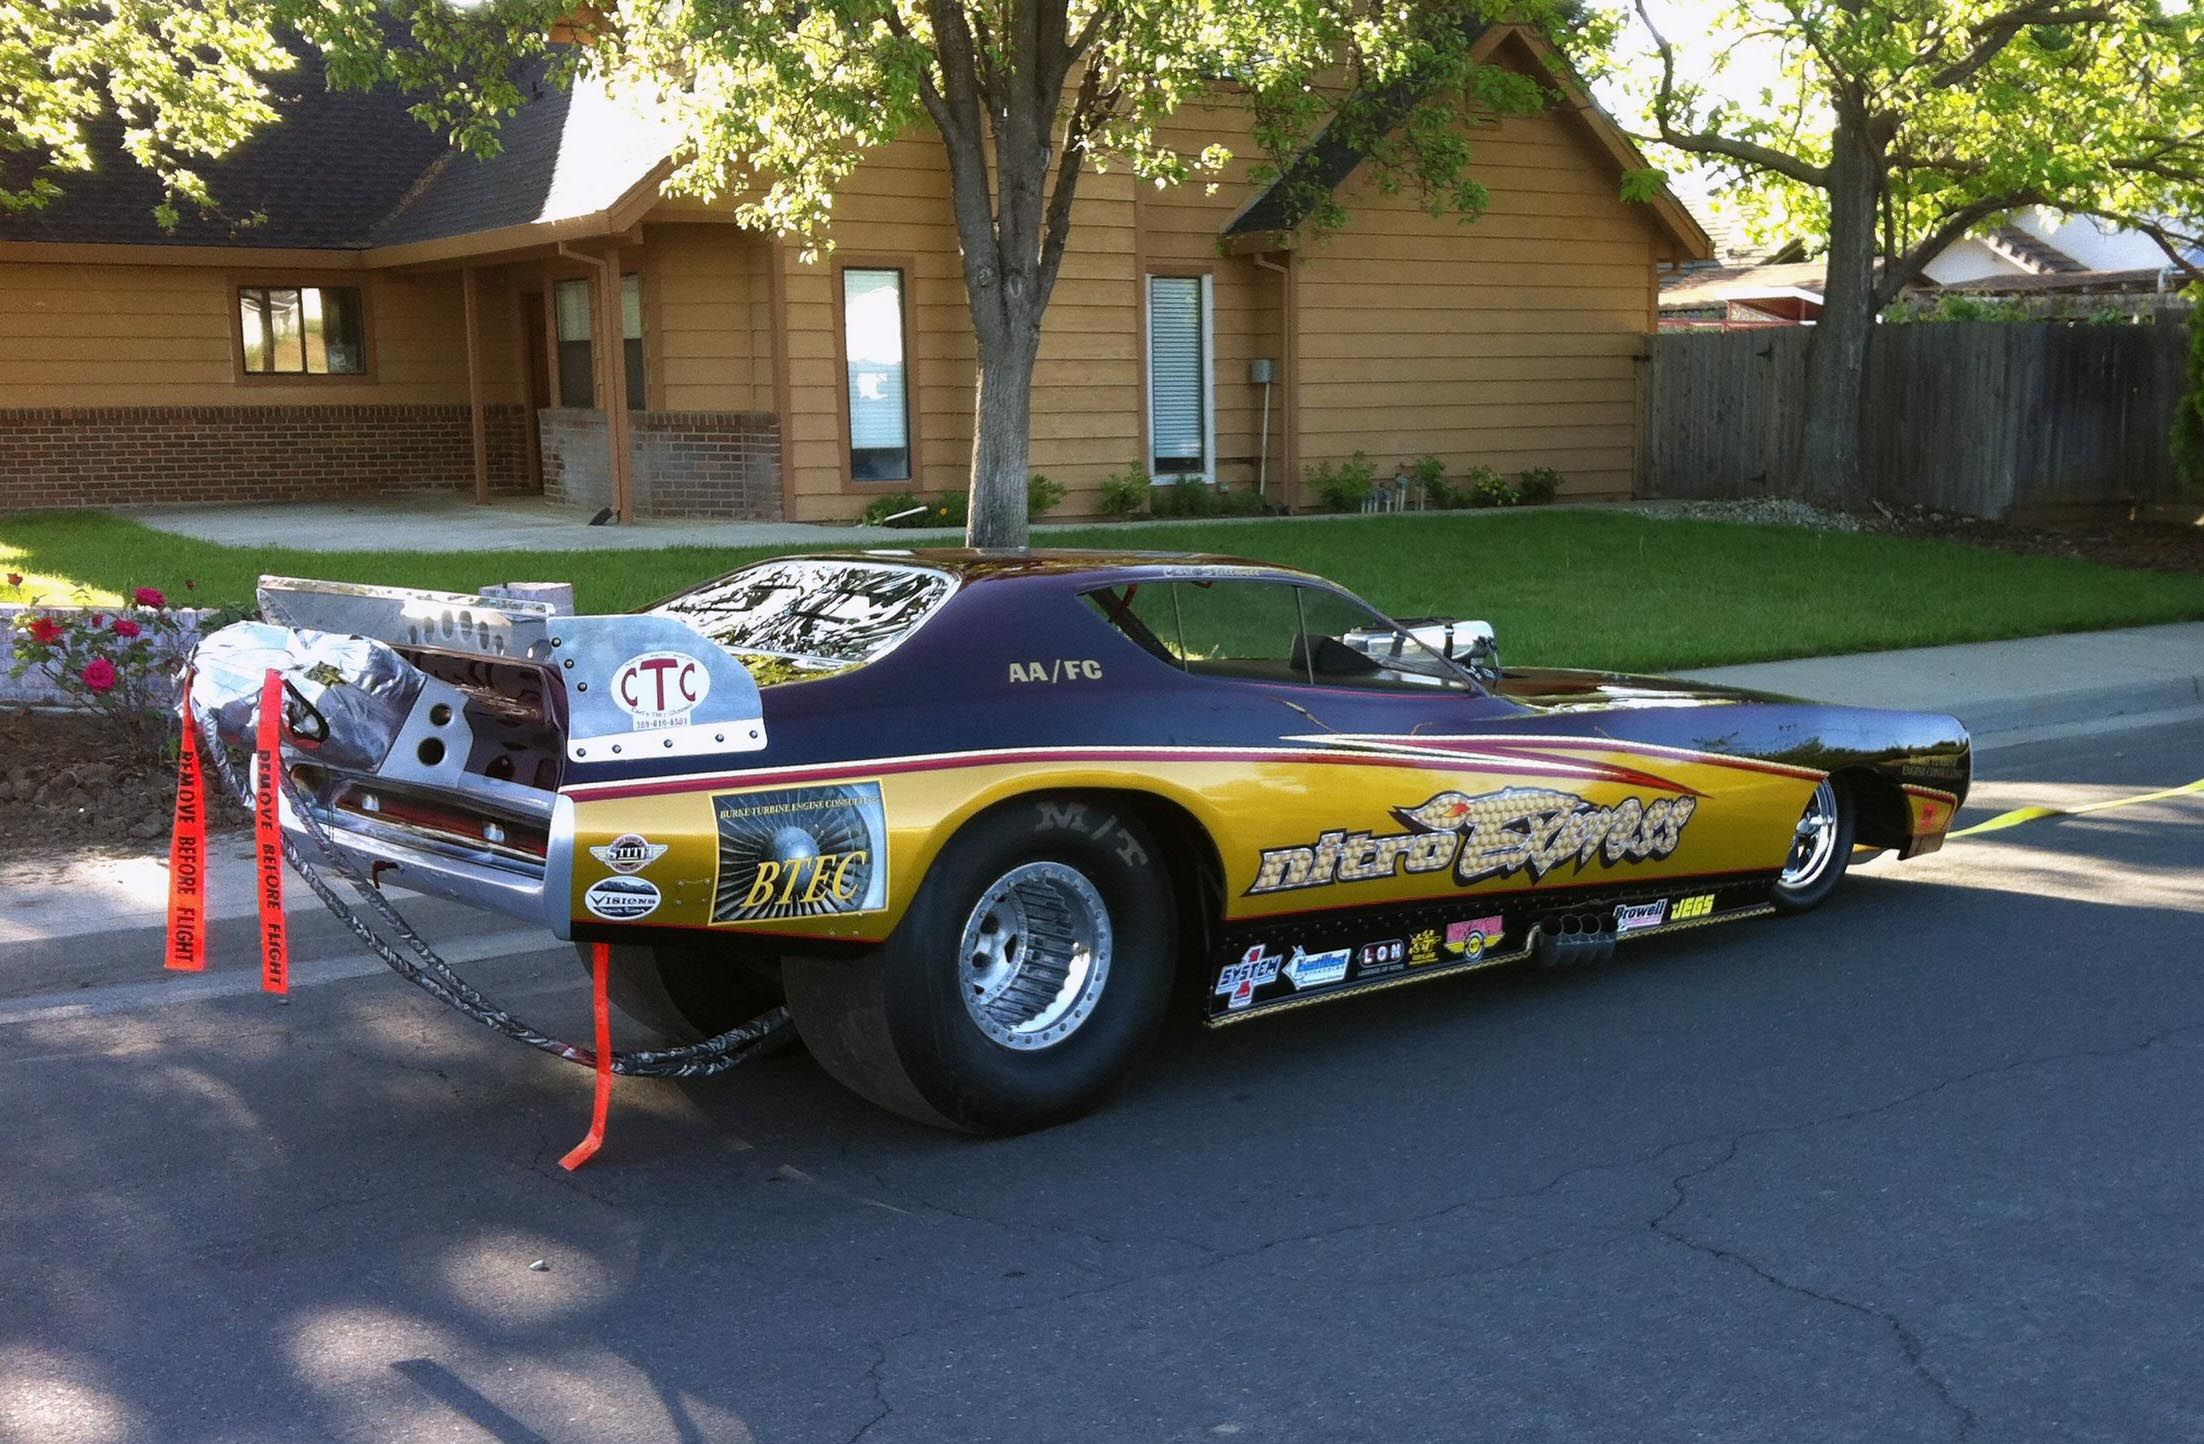 Nitro-Express.jpg 2,204×1,444 pixels | Drag Cars , Street Rods and ...